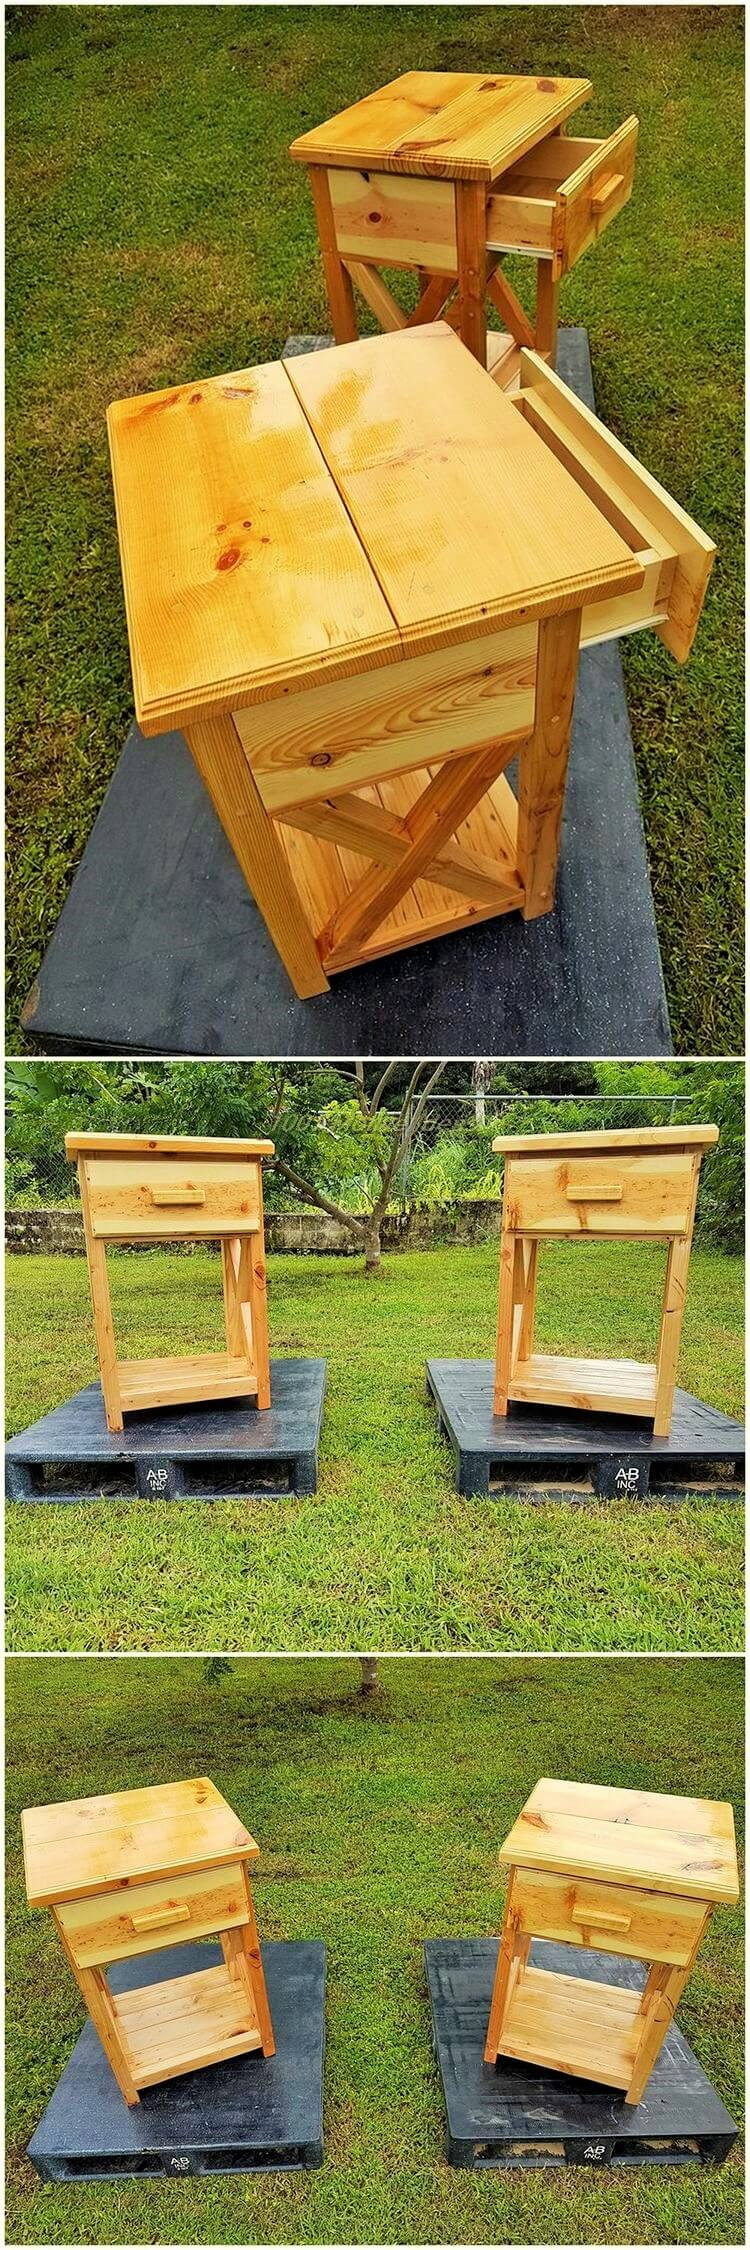 wooden-Pallet-Banch-furniture-Project-Ideas-011